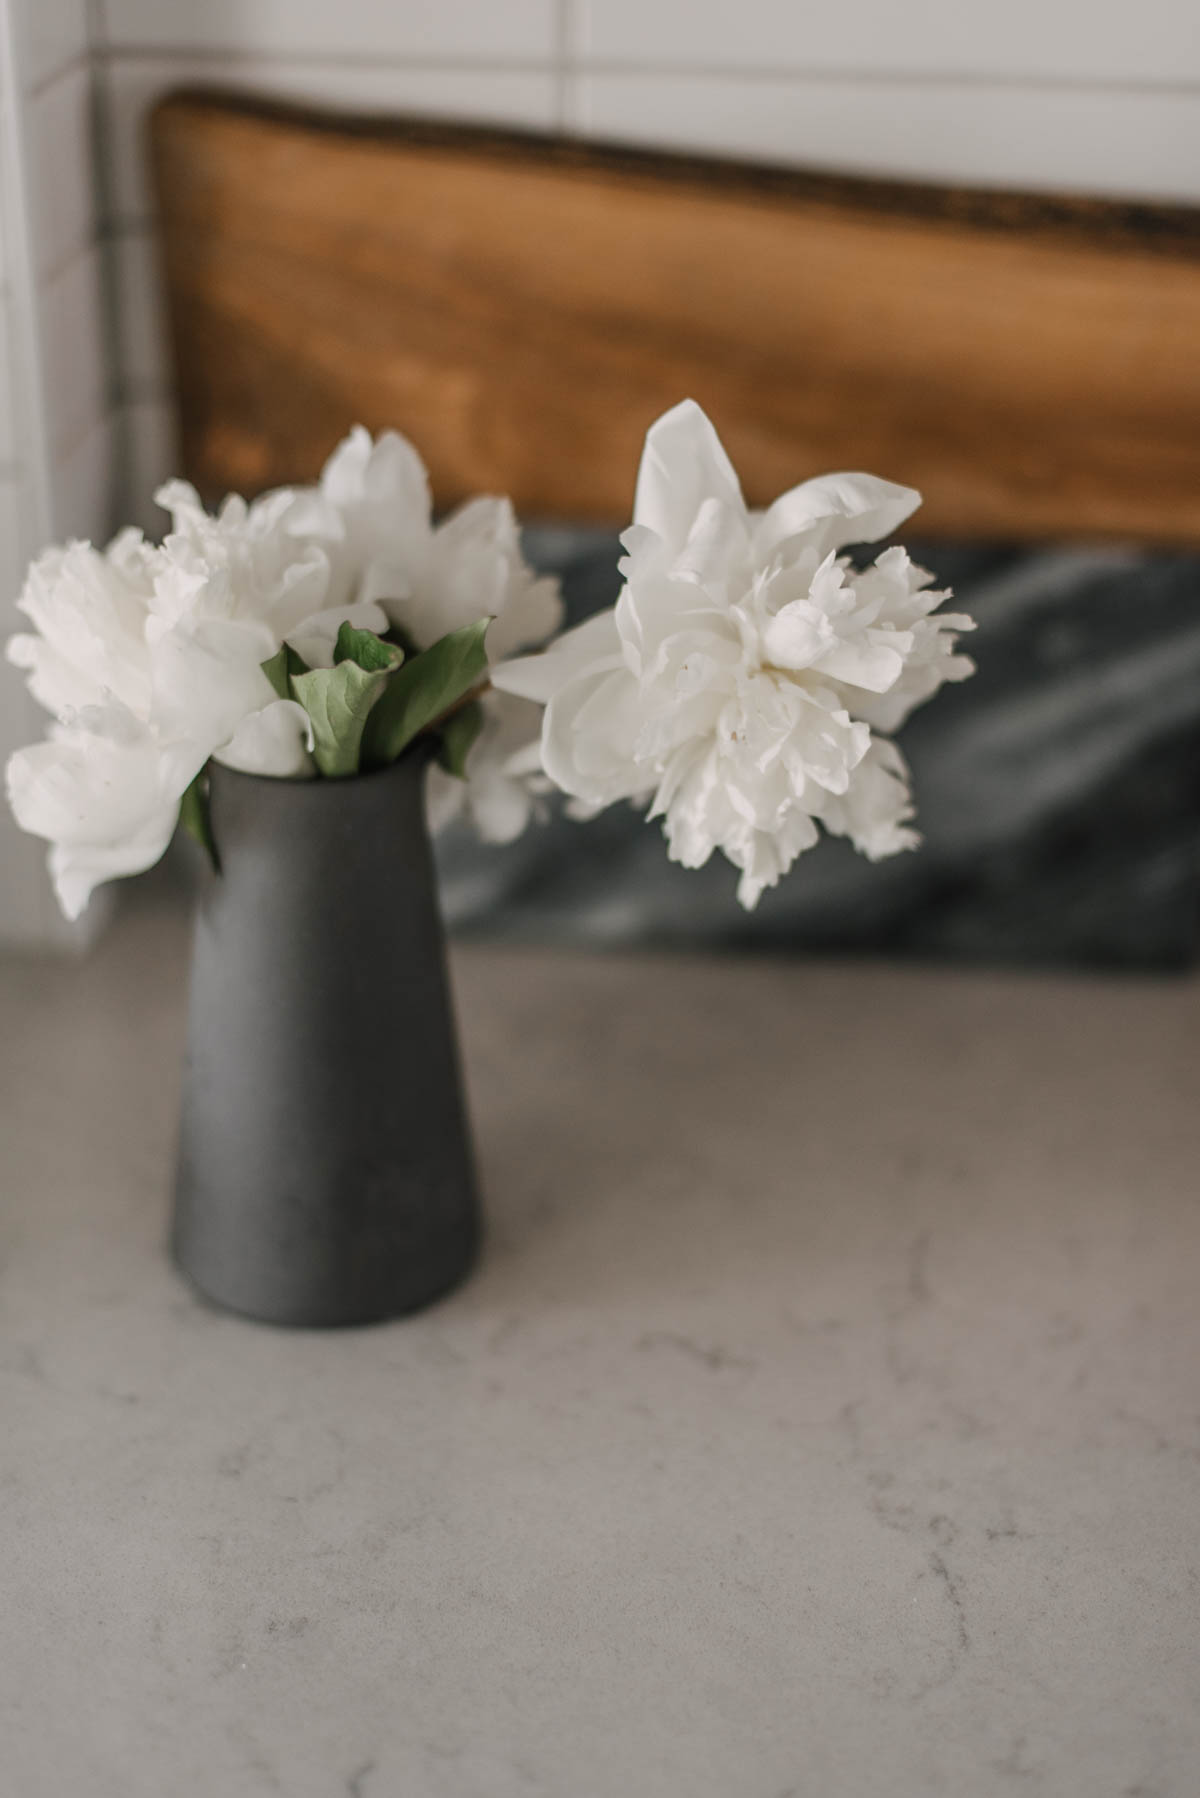 White Peonies for Modern Decor